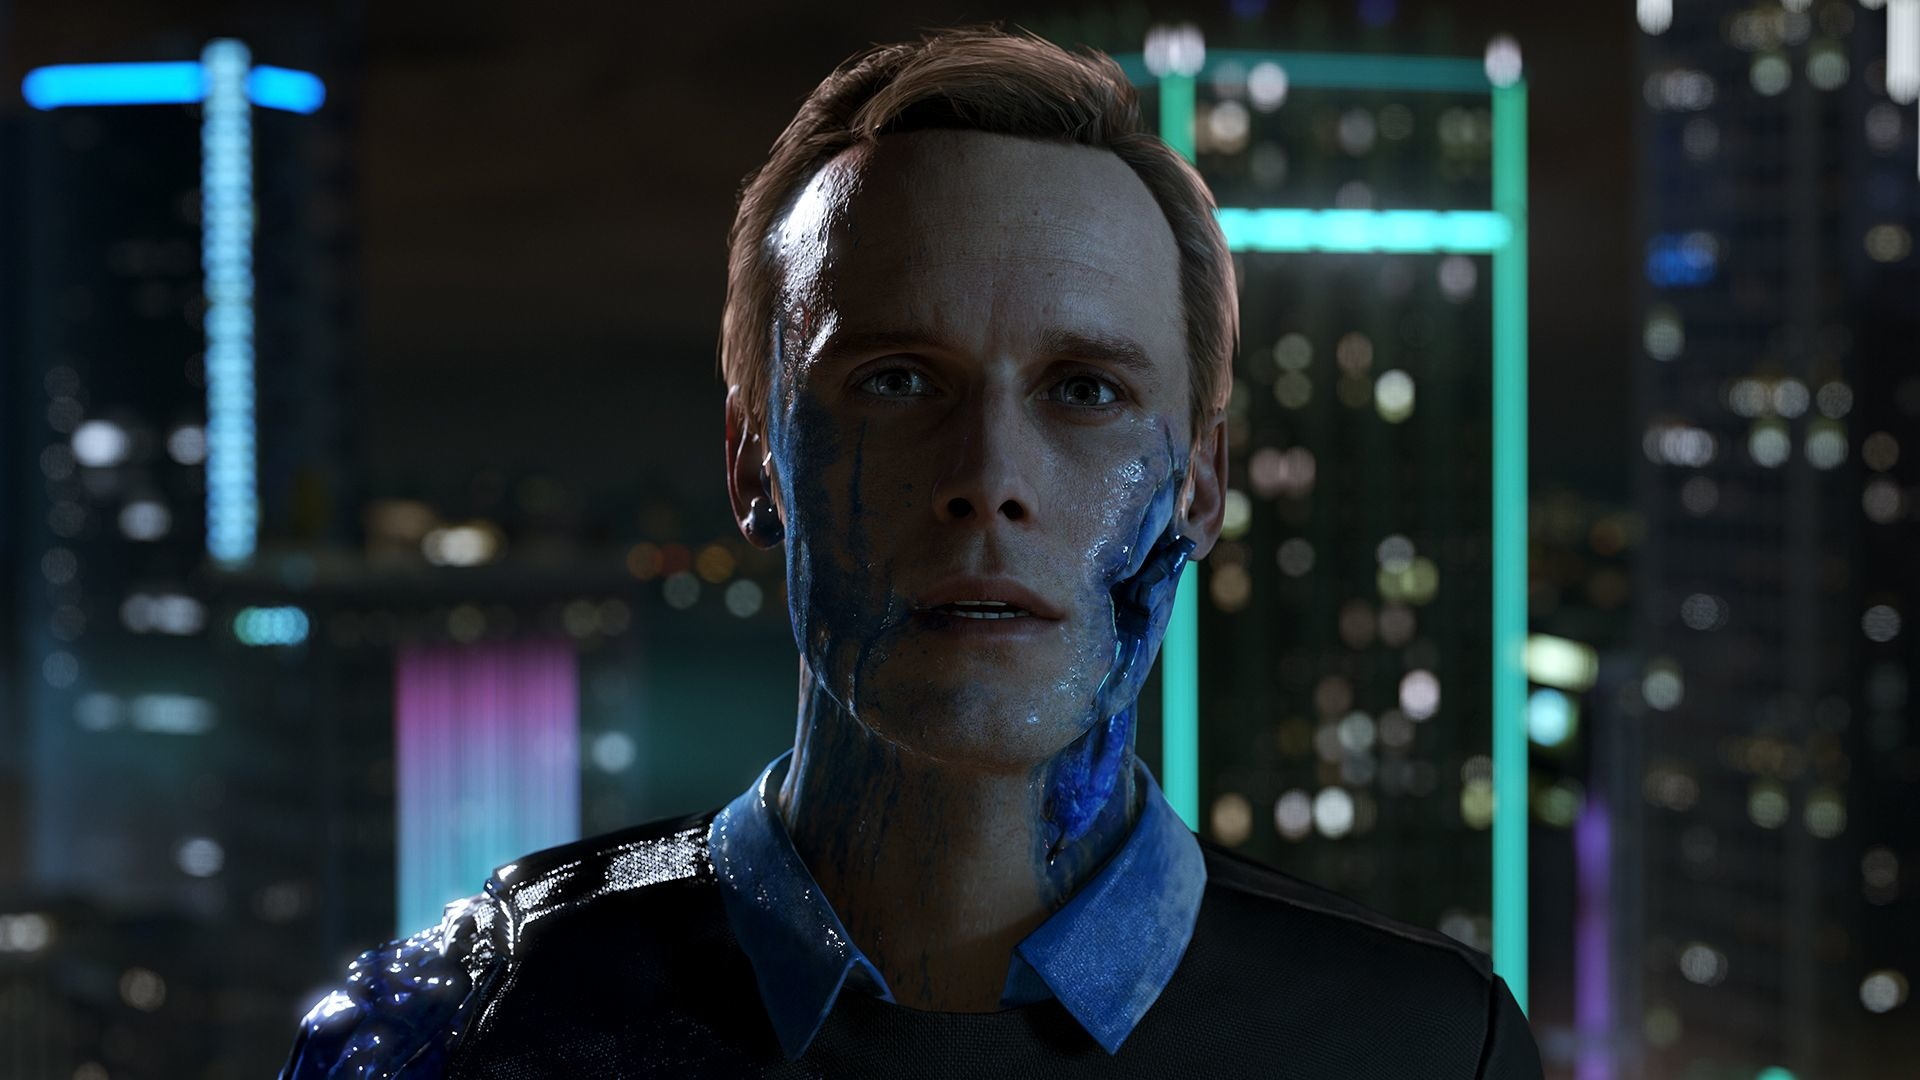 Detroit: Become Human - The Hostage